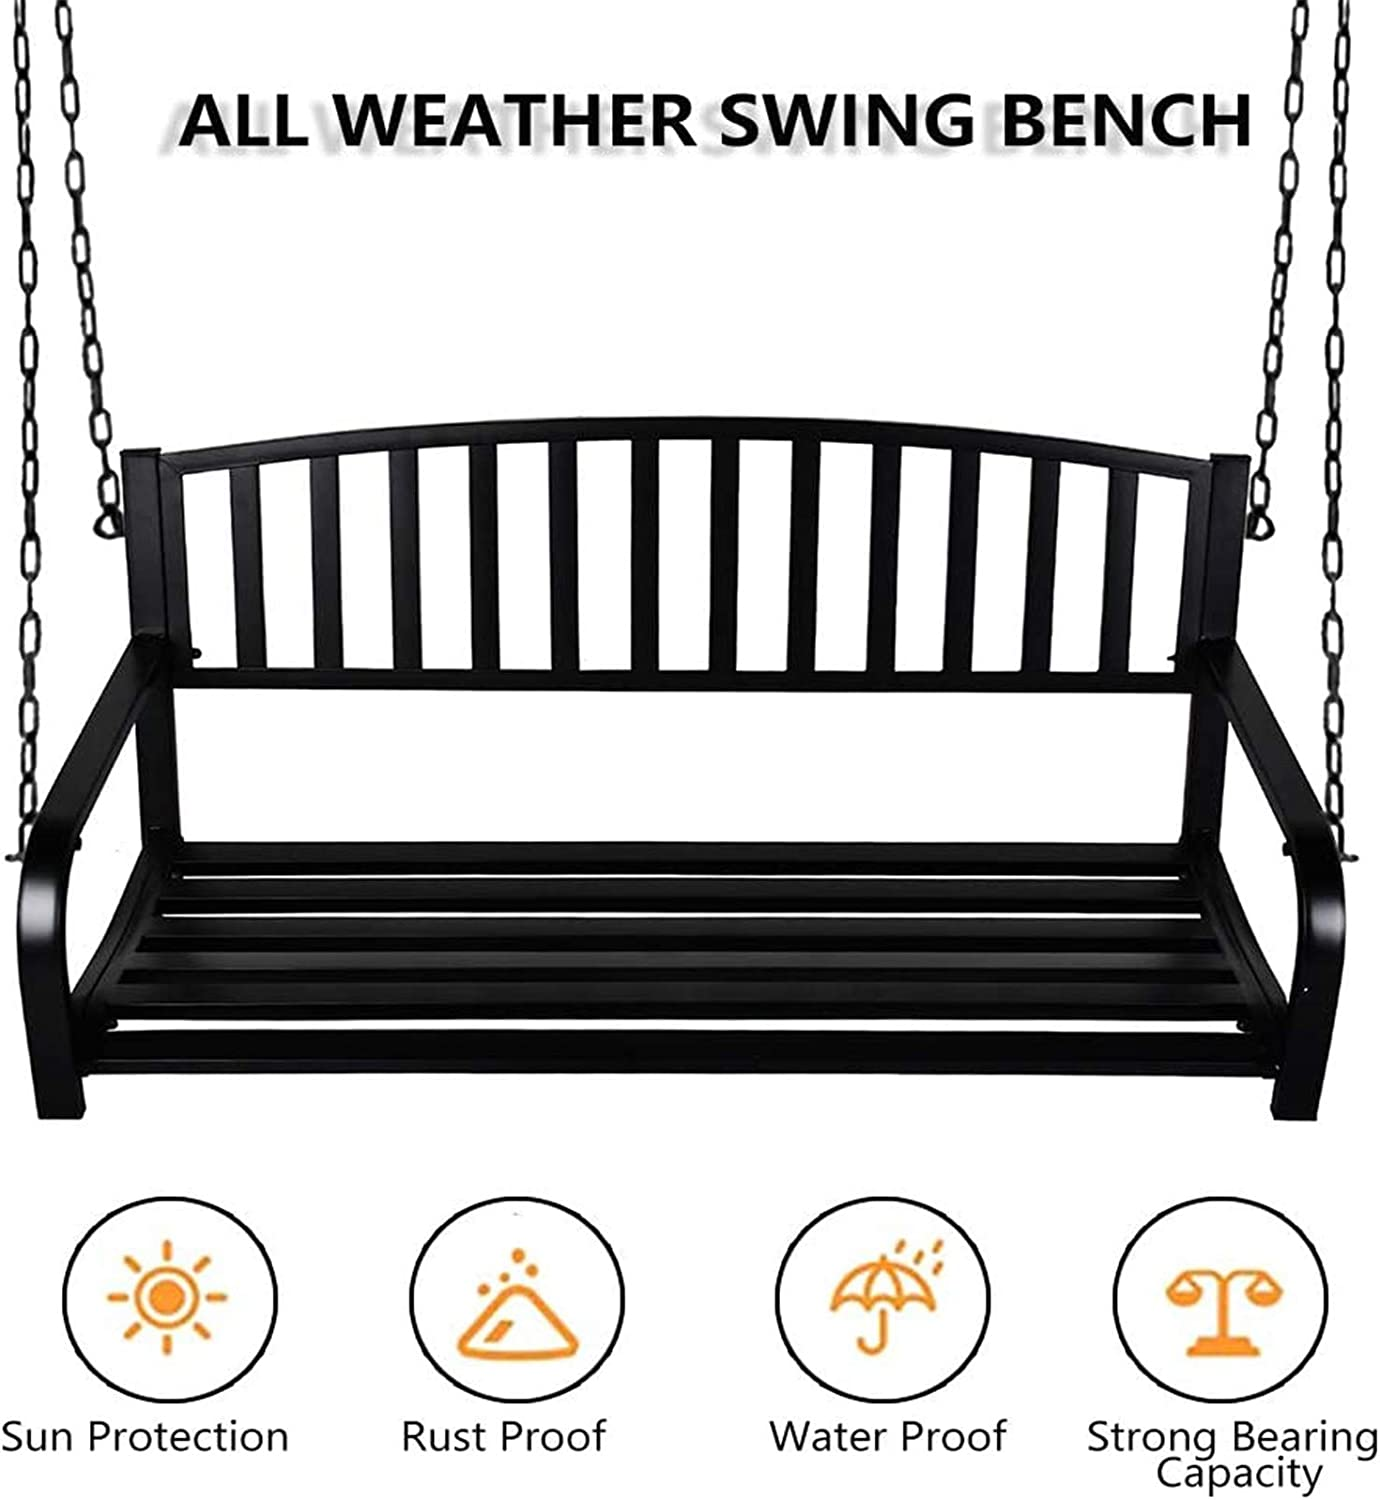 Patio Furniture Metal Swing Bench for Yard Deck Backyard Pattern B Hanging Bench Swing Outdoor 2 Person Front Hanging Porch Swing Bench with Chains